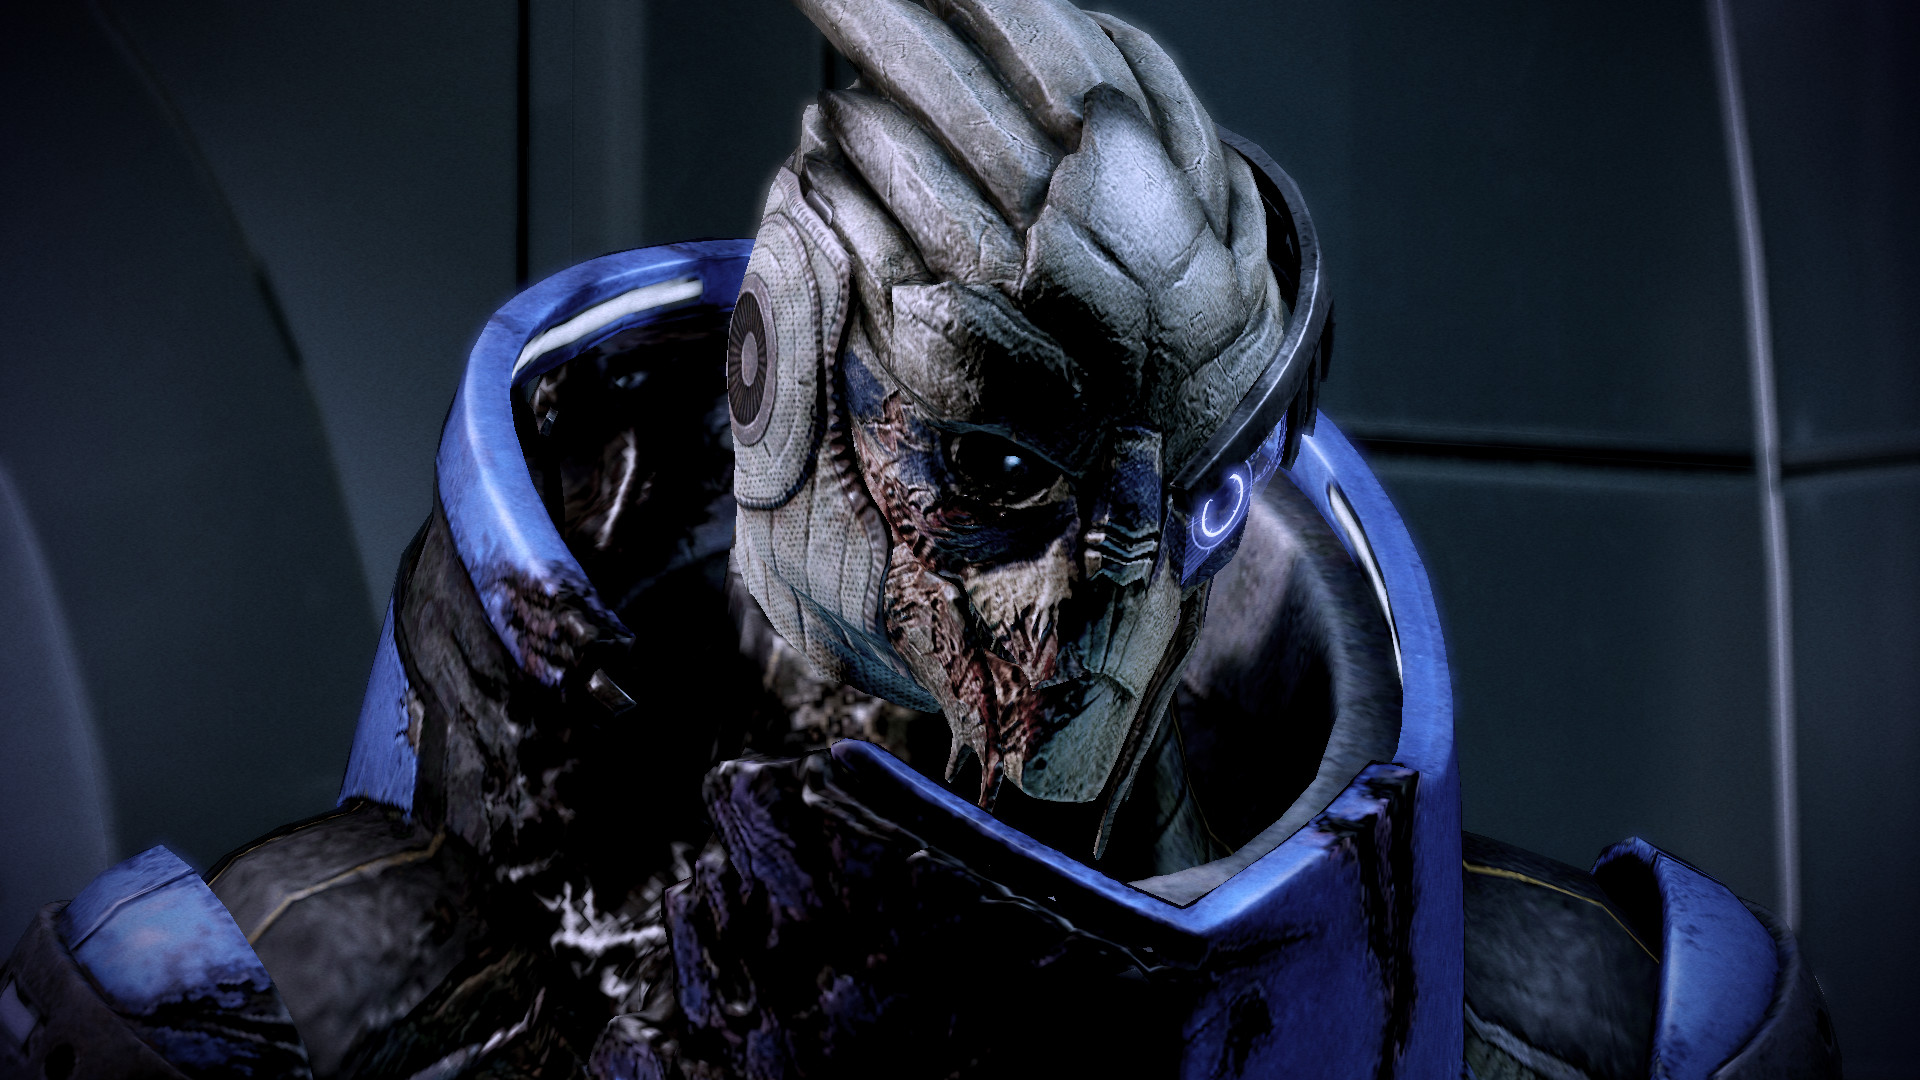 Garrus Vakarian 04 by johntesh